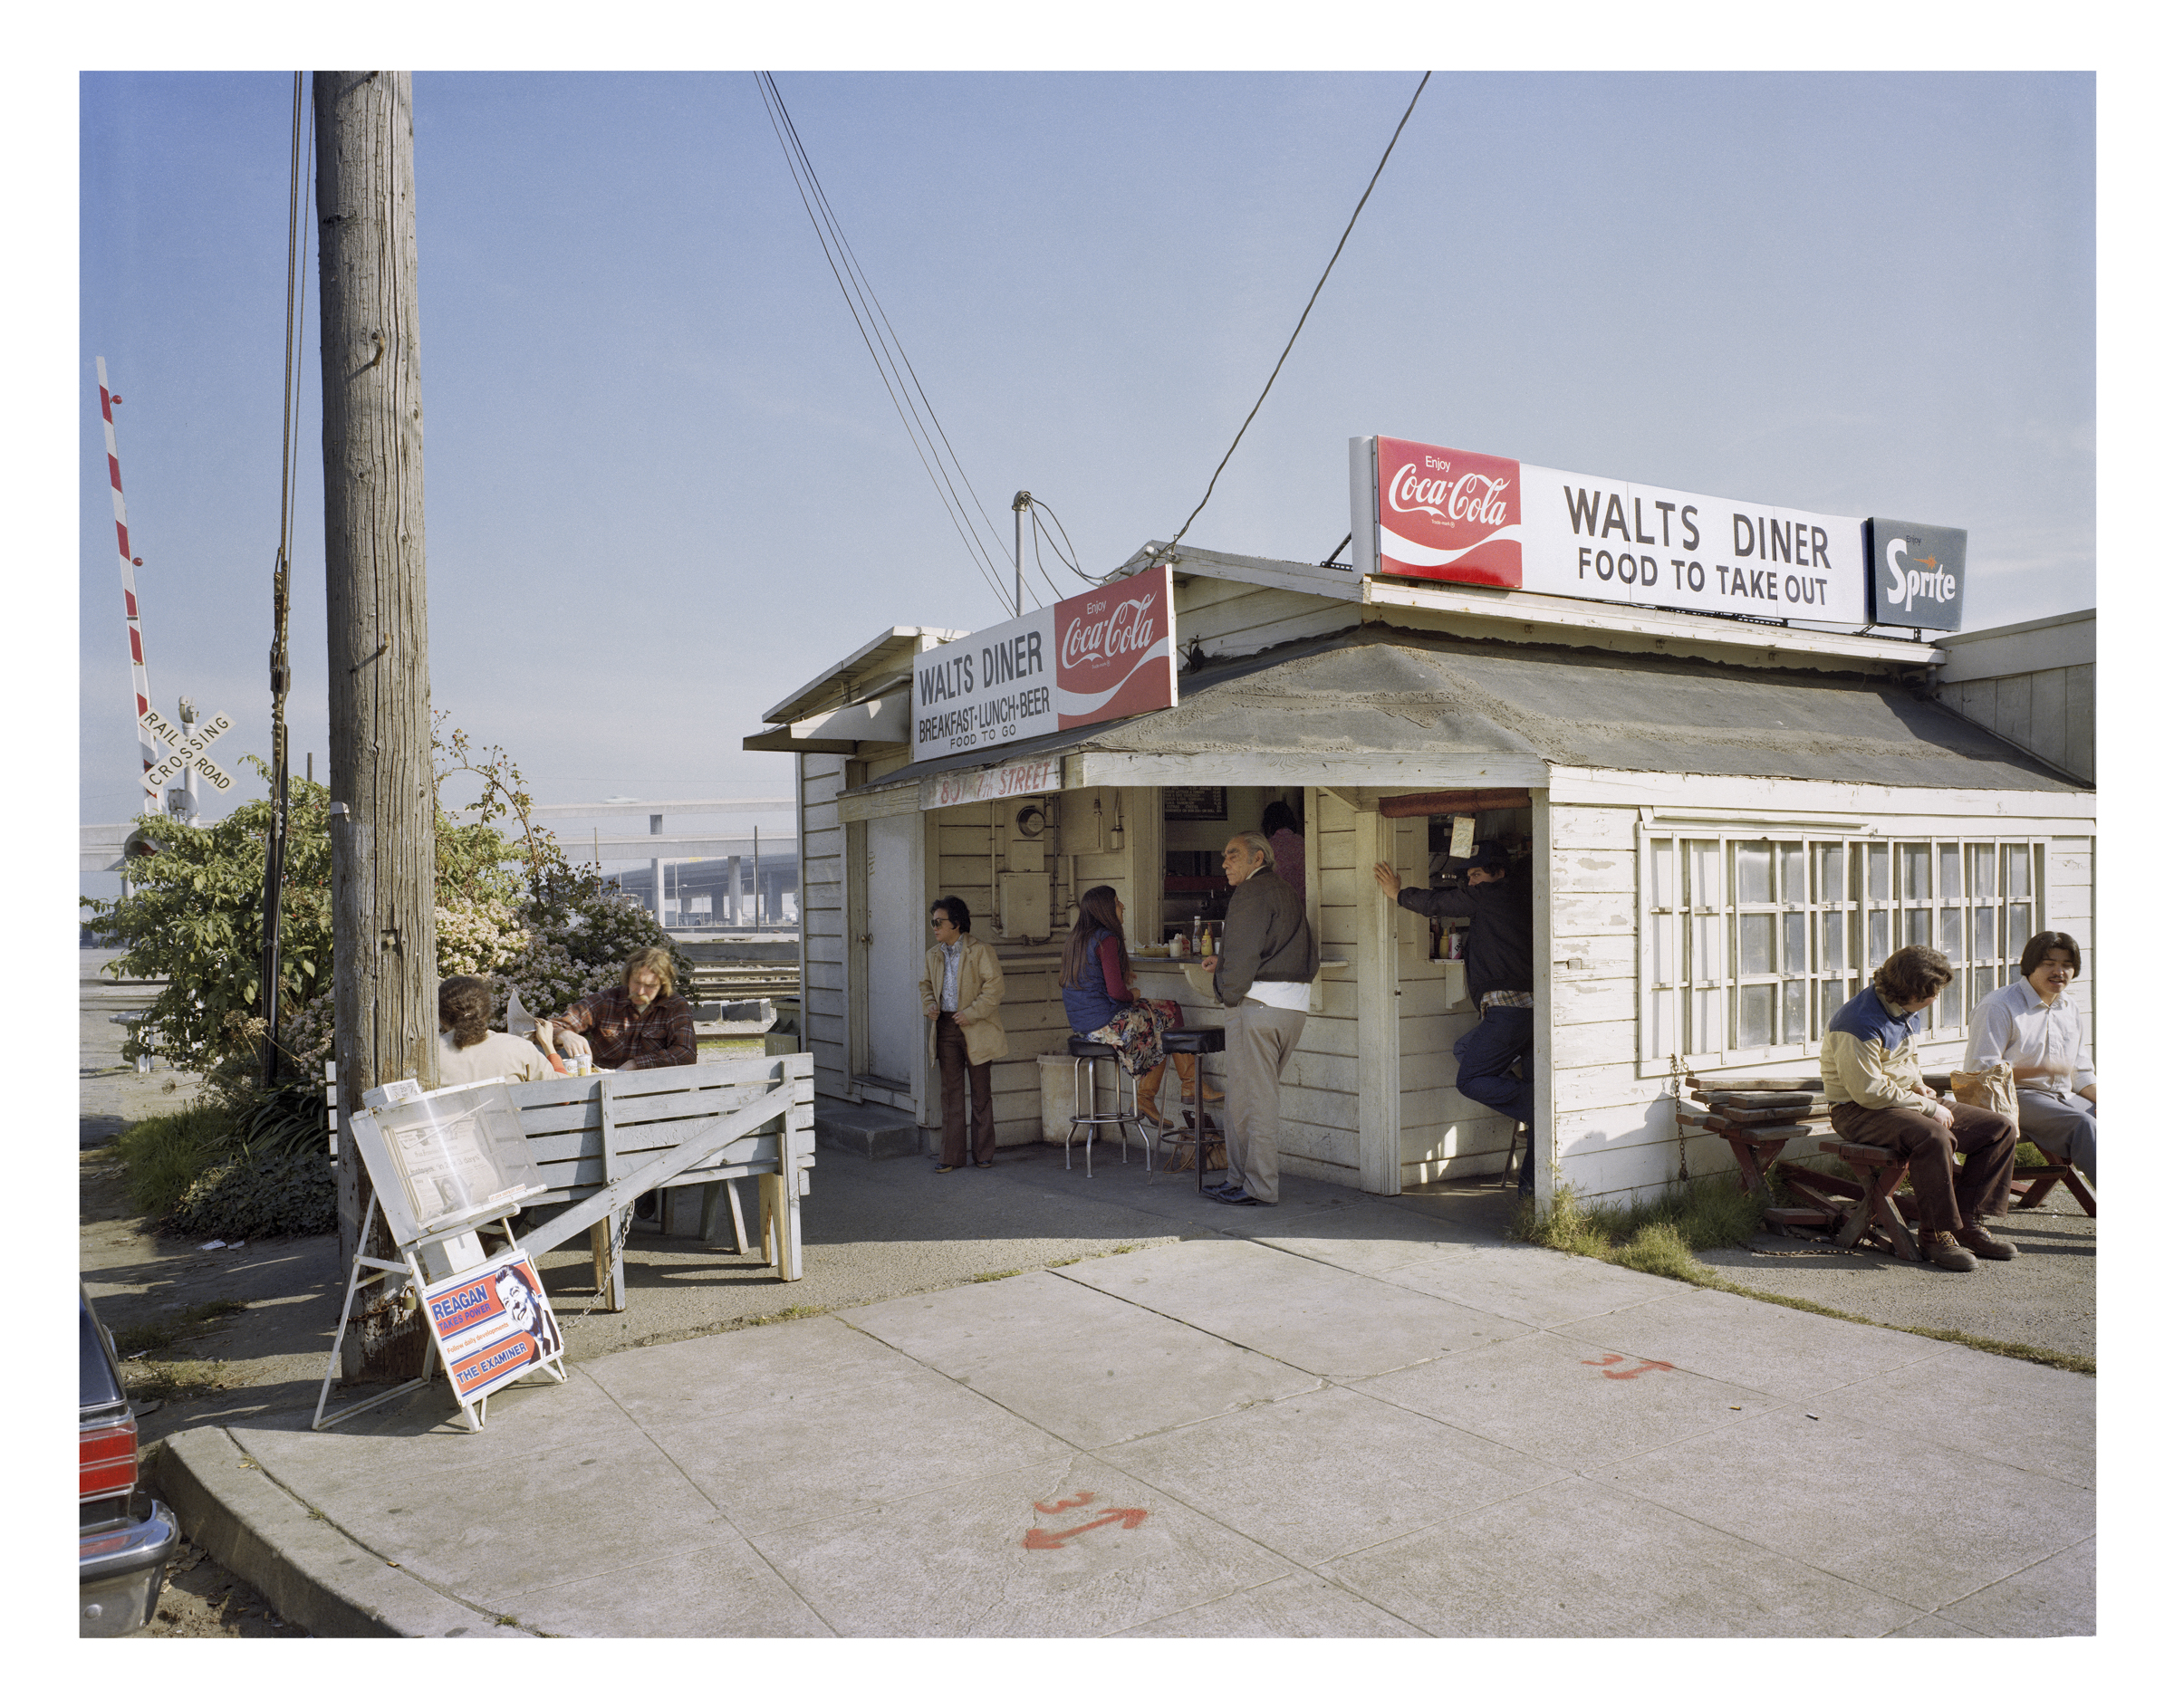 Walt's Diner, 7th at King Street, 1981 Archival Pigment Print, 2016 16 x 20 inches, edition of 5 20 x 24 inches, edition of 2 30 x 40 inches, edition of 2